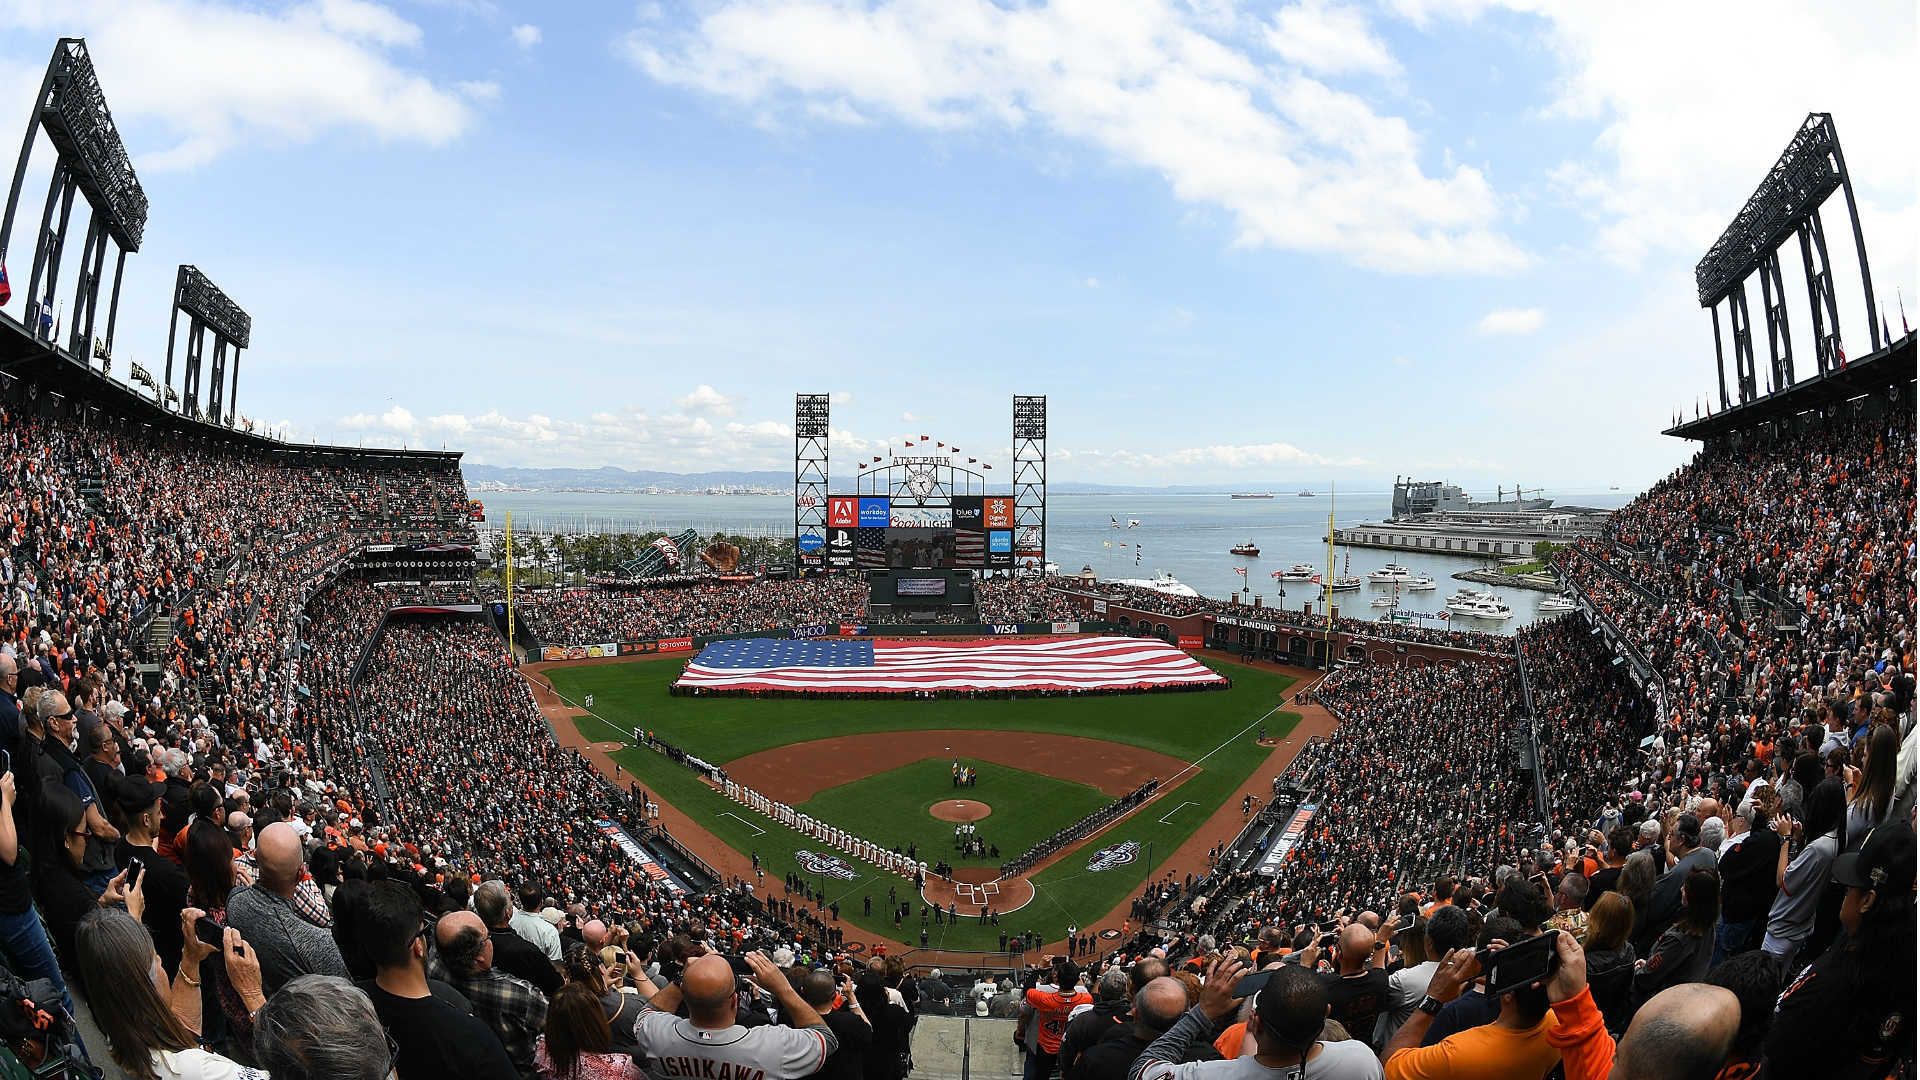 Raiders in talks to play 2019 season at Giants' Oracle Park